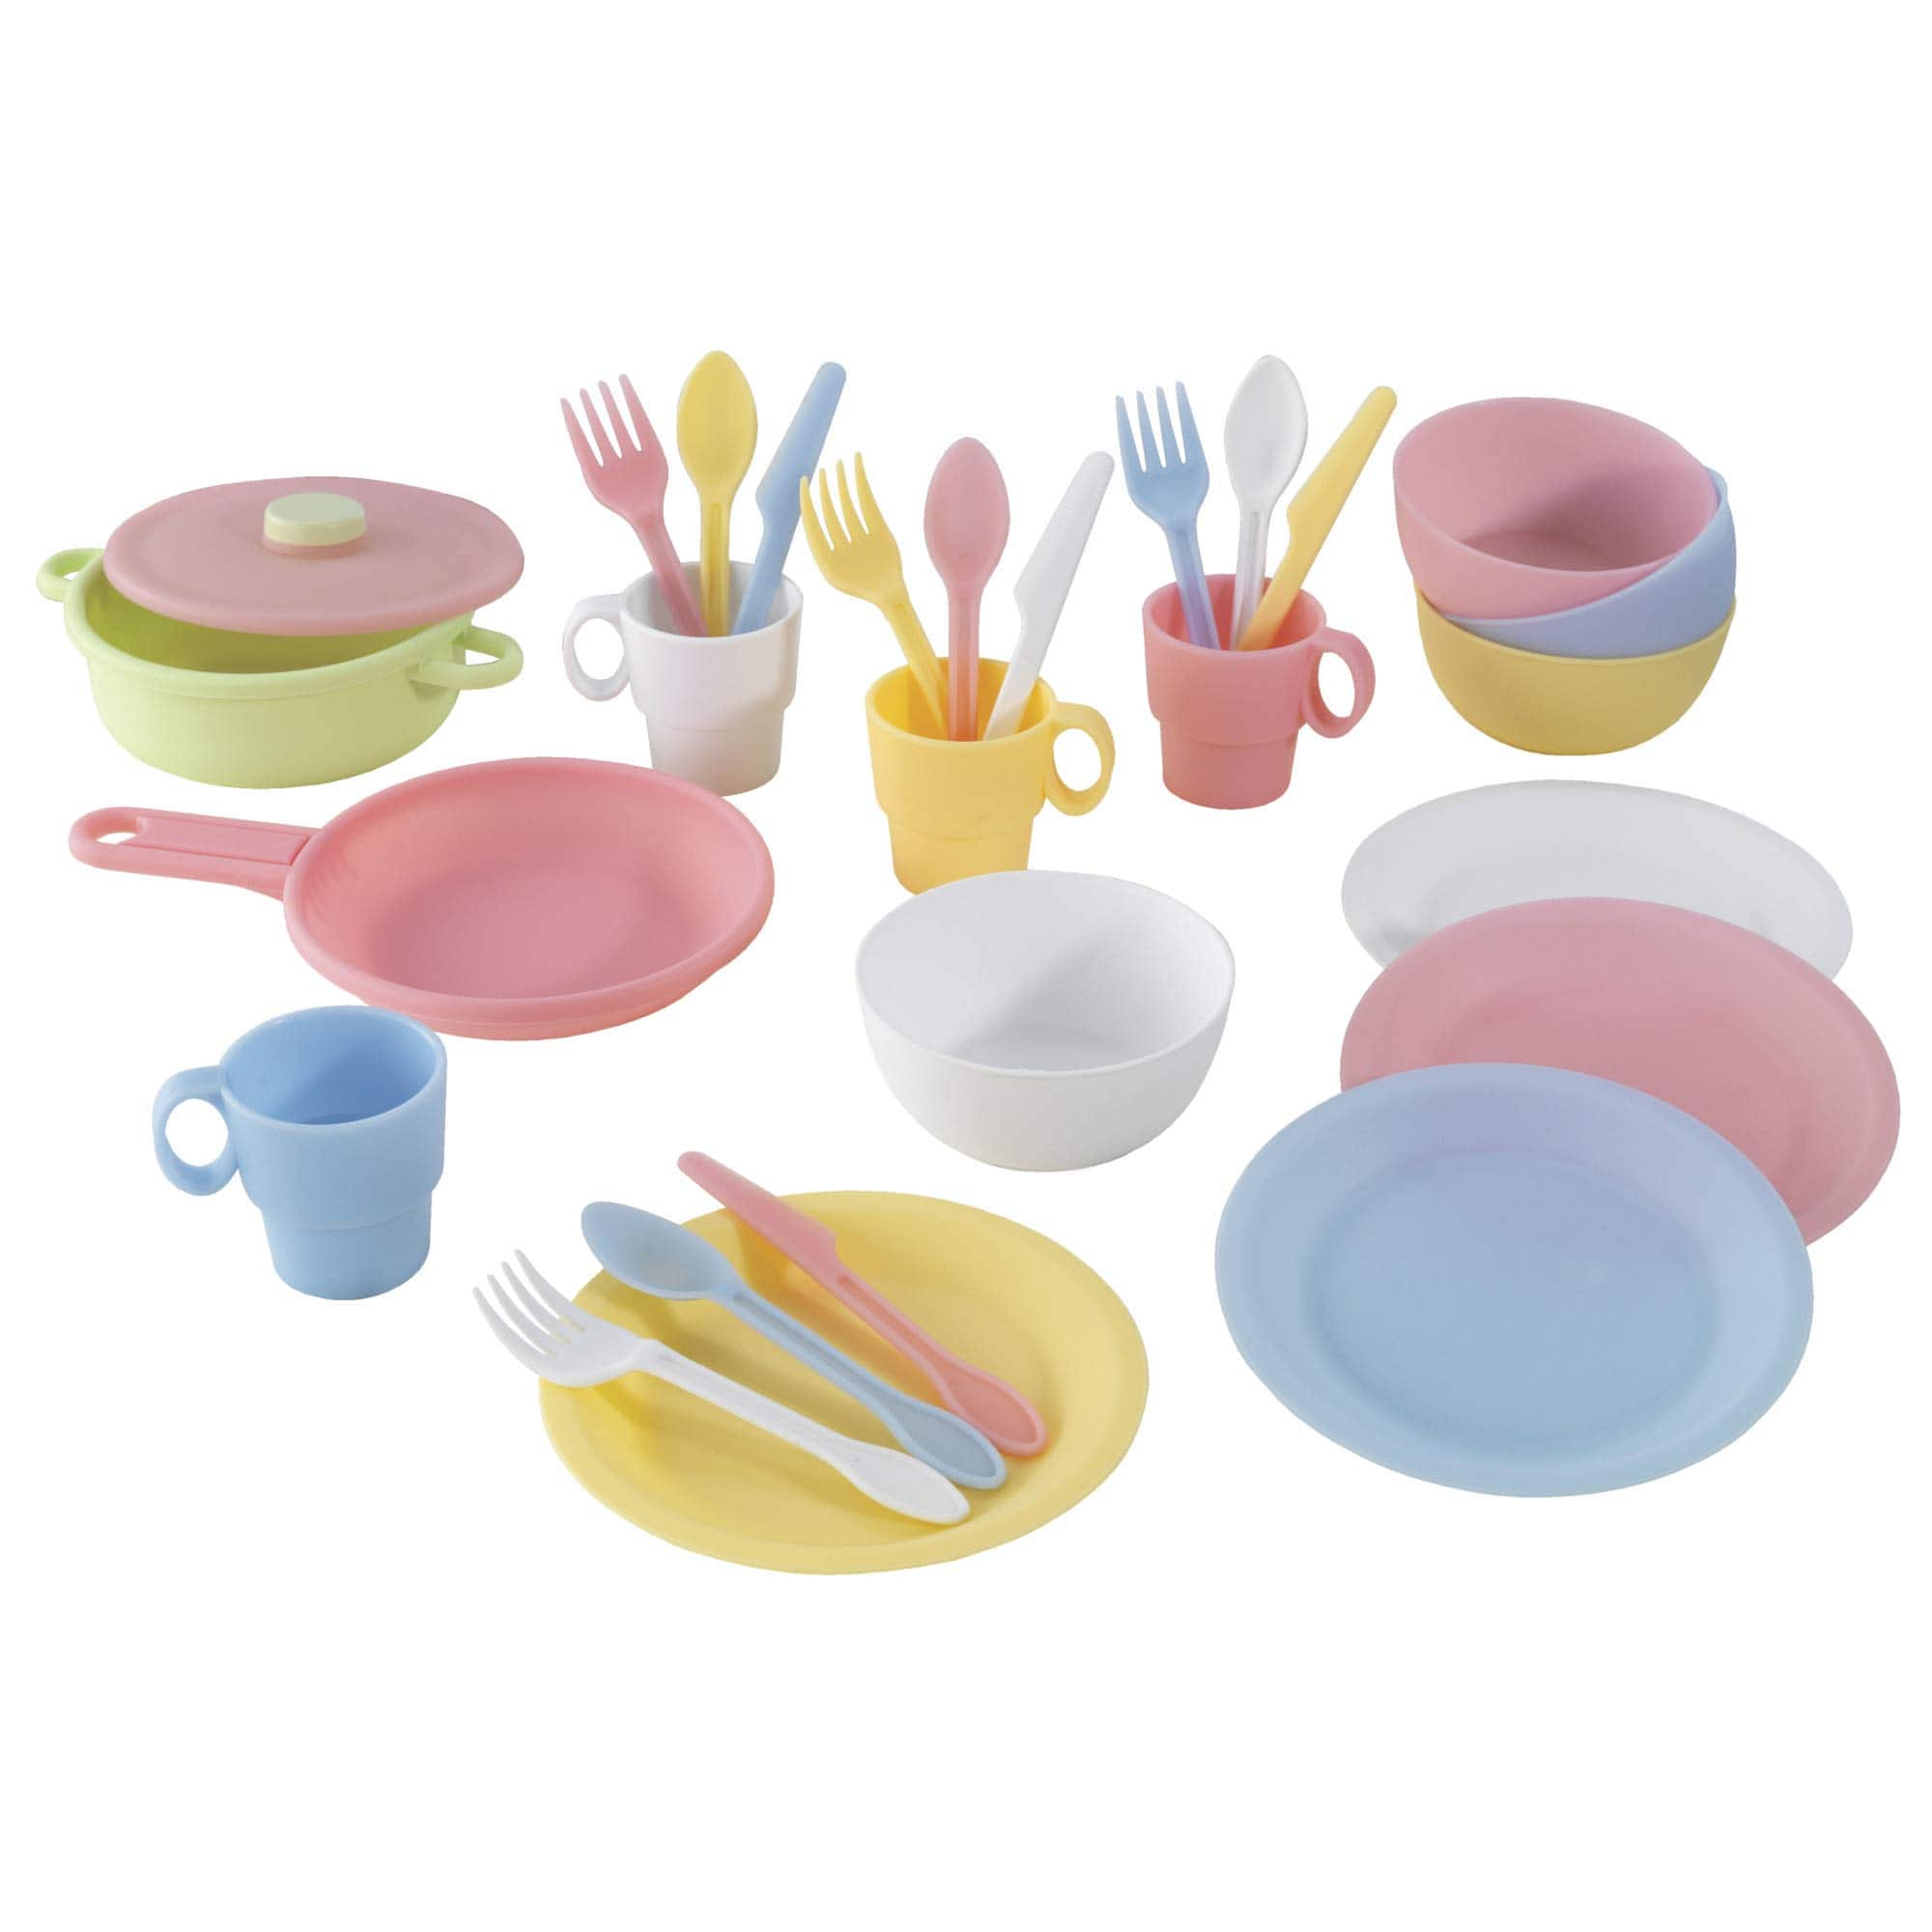 27-Piece Cookware KidKraft Playset (Pastel) $9.66 at Amazon / Walmart